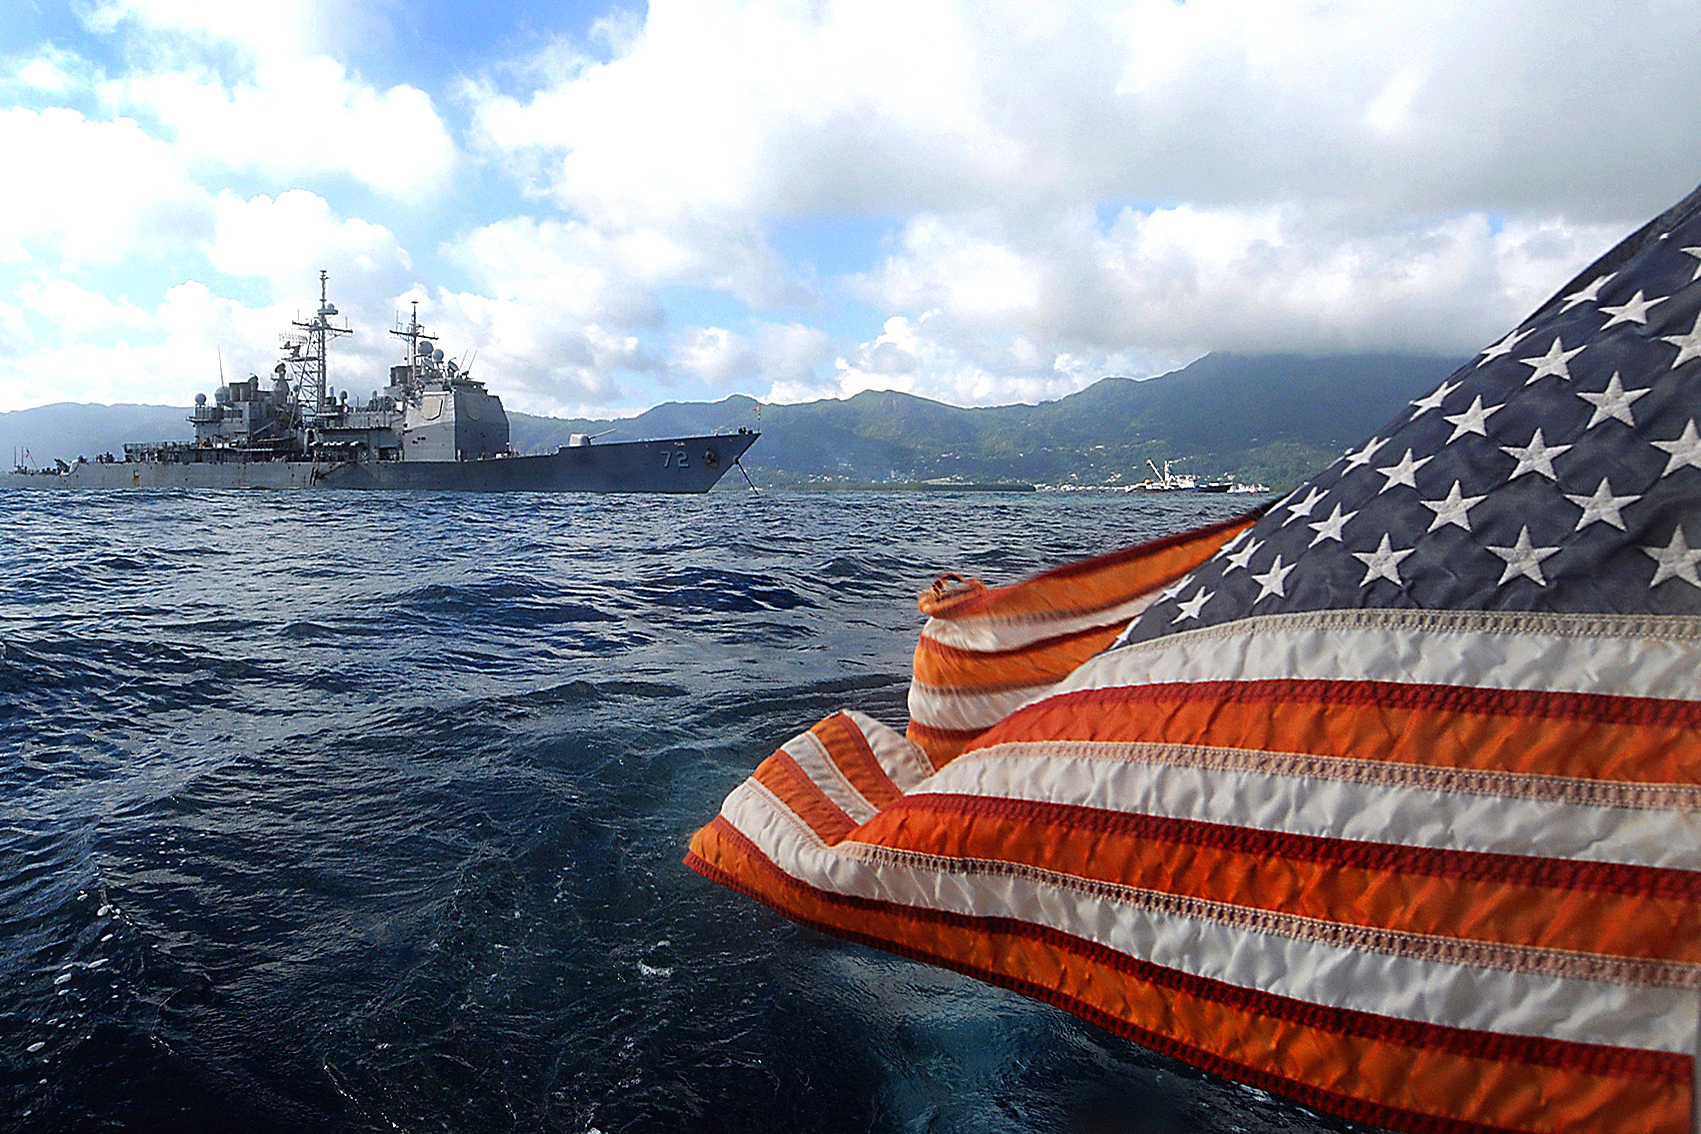 american-flag-flying-behind-a-navy-ship-in-the-ocean-stock-photography.jpg